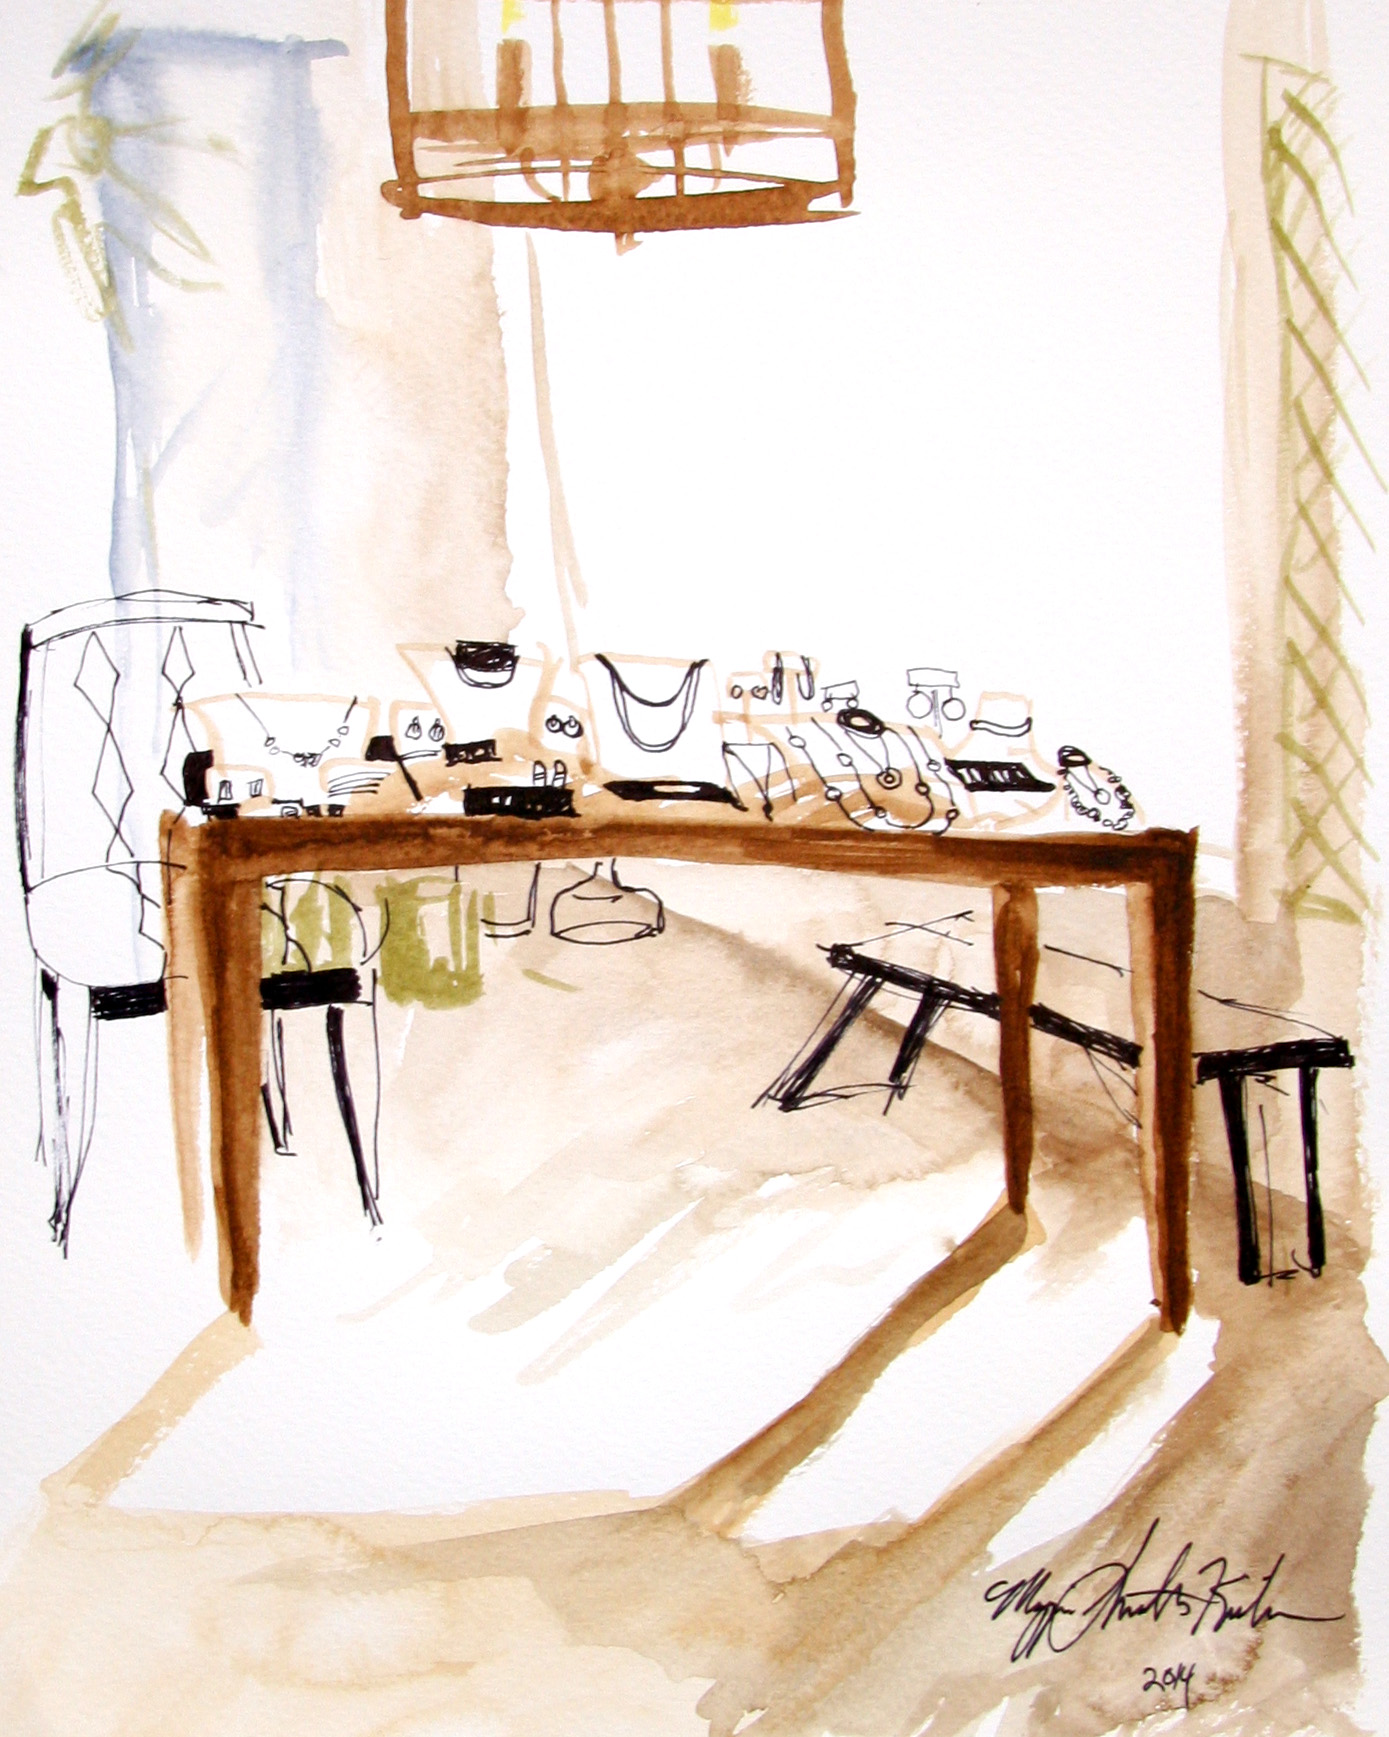 A watercolor sketch of the display table for the jewelry.